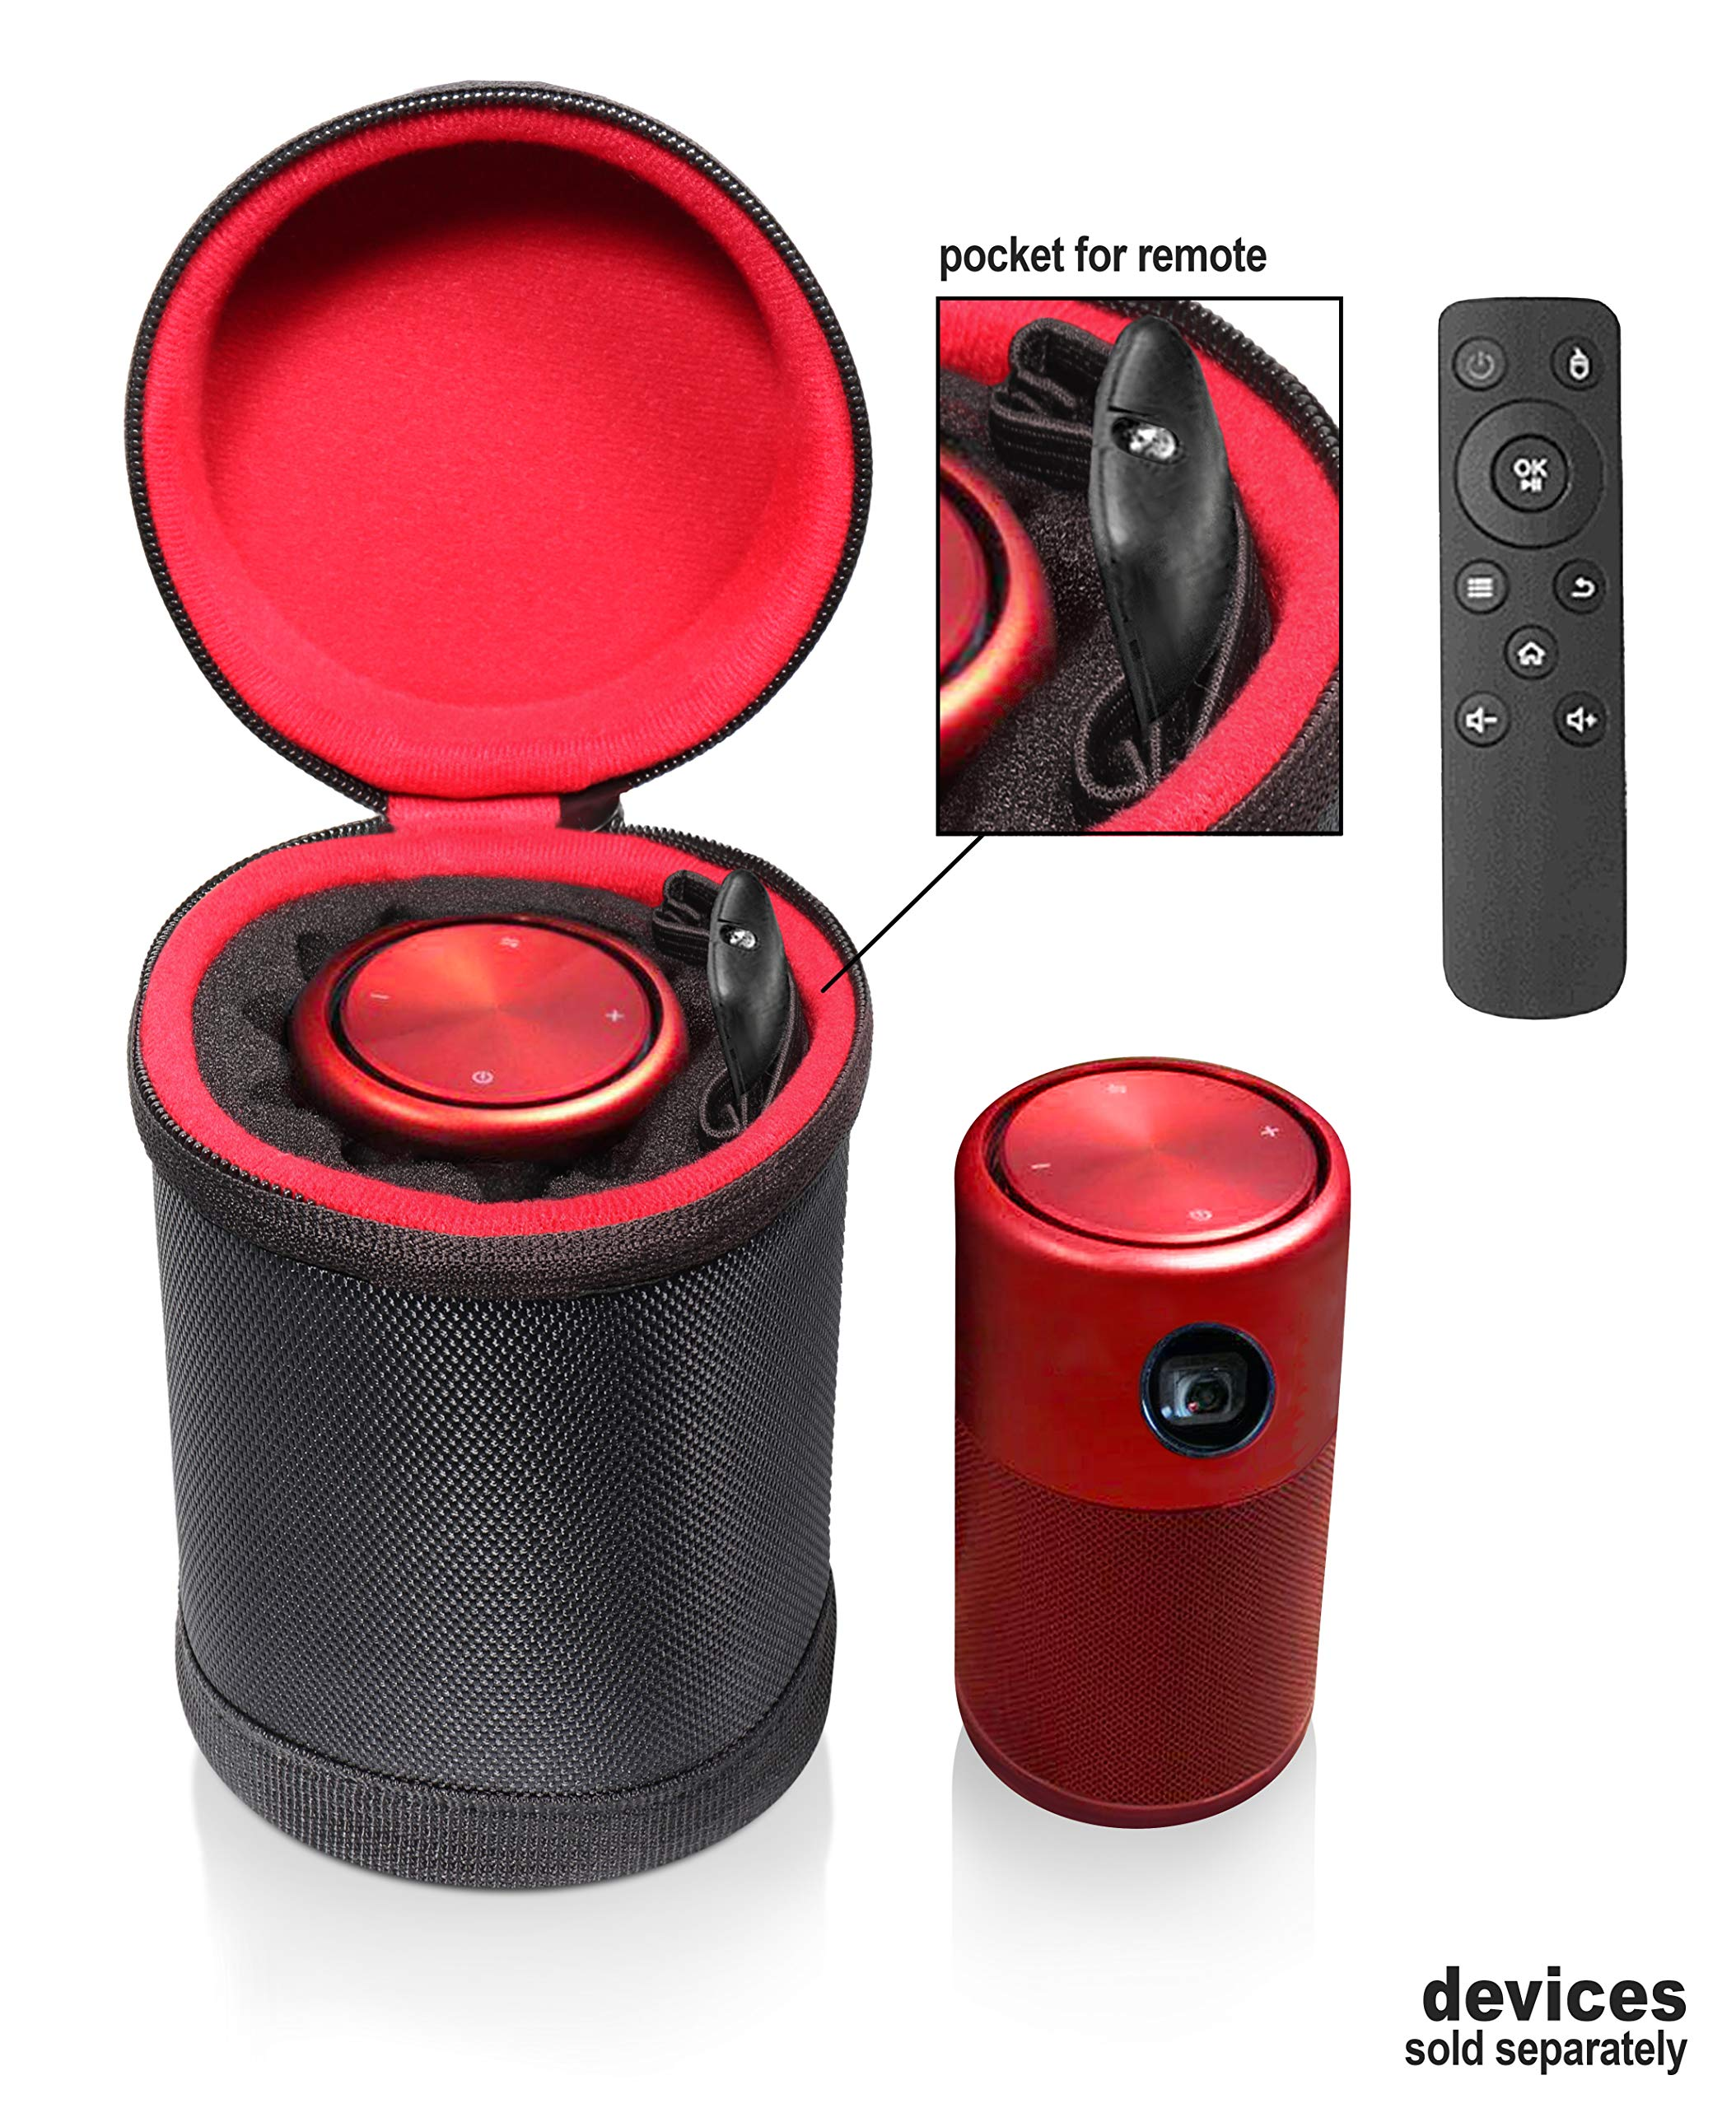 Customized Stand Case for Nebula Capsule, Designed to Keep The Nebula Smart Portable Wi-Fi Mini Projector in Original Stand Status, Excellent Soft Padding, Room for The Remote Controller by CaseSack